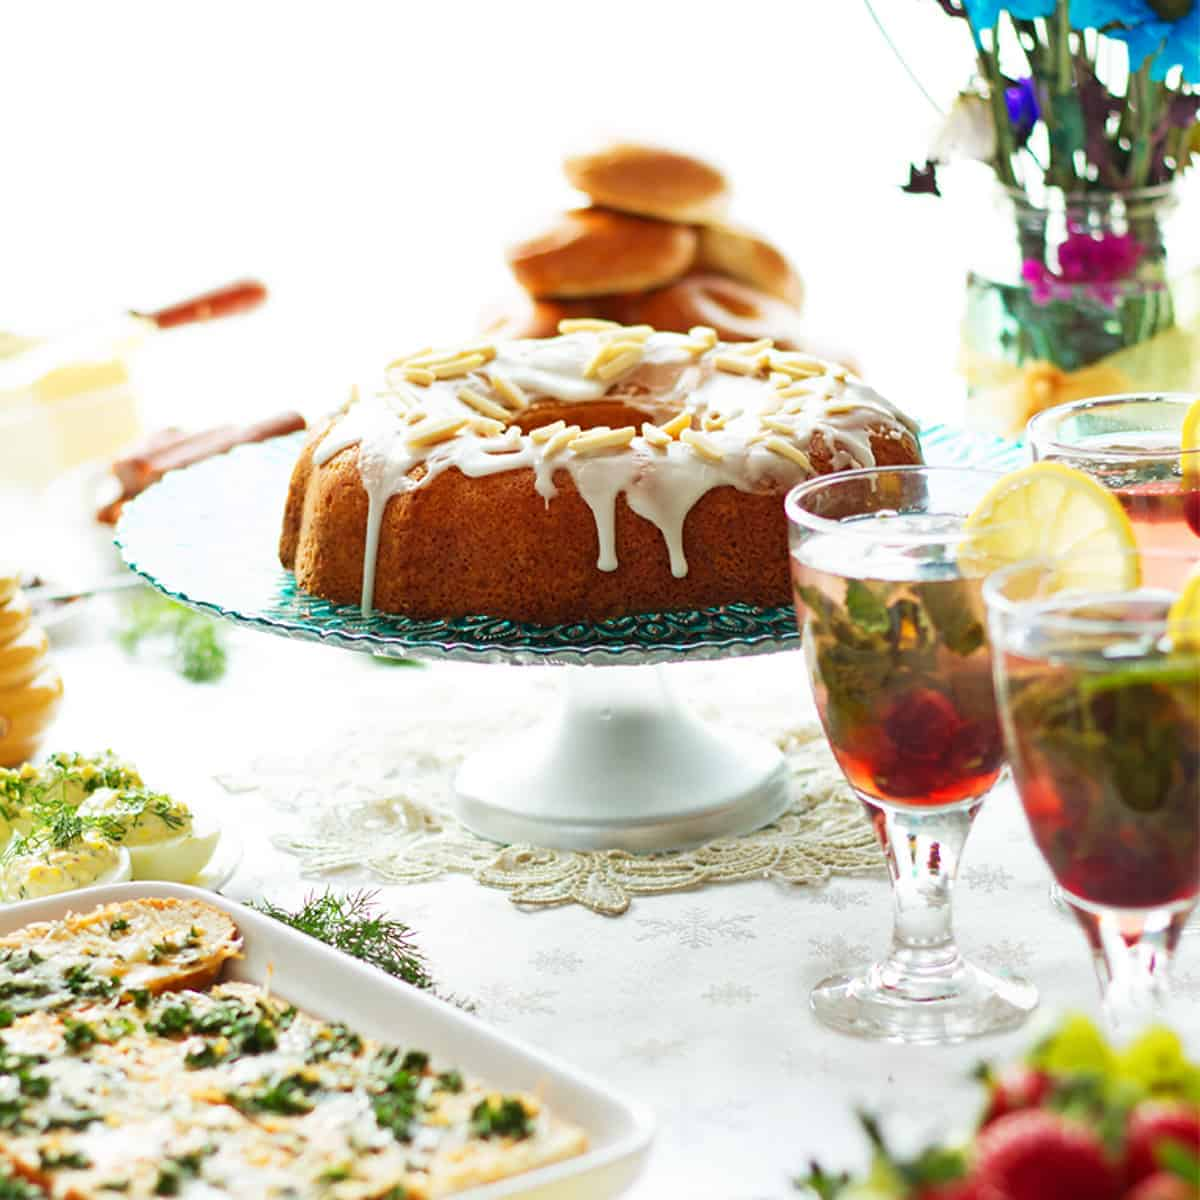 Easter Brunch Menu Ideas with Recipes - Ilona's Passion